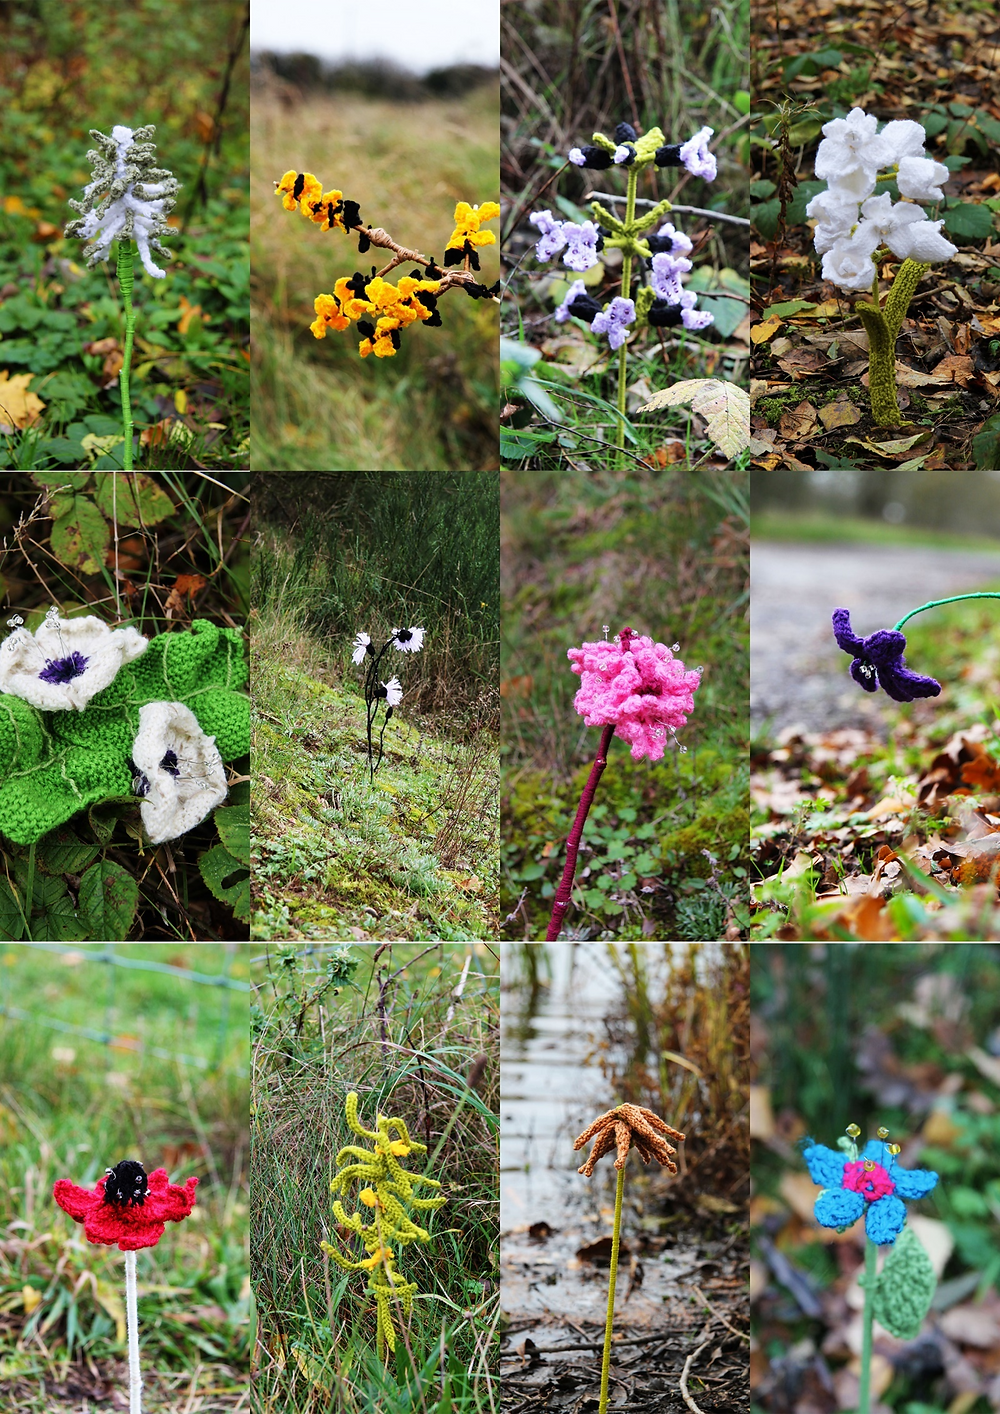 The image features knitted flowers created by Lucy cross as part of a university project which focused on conservation.